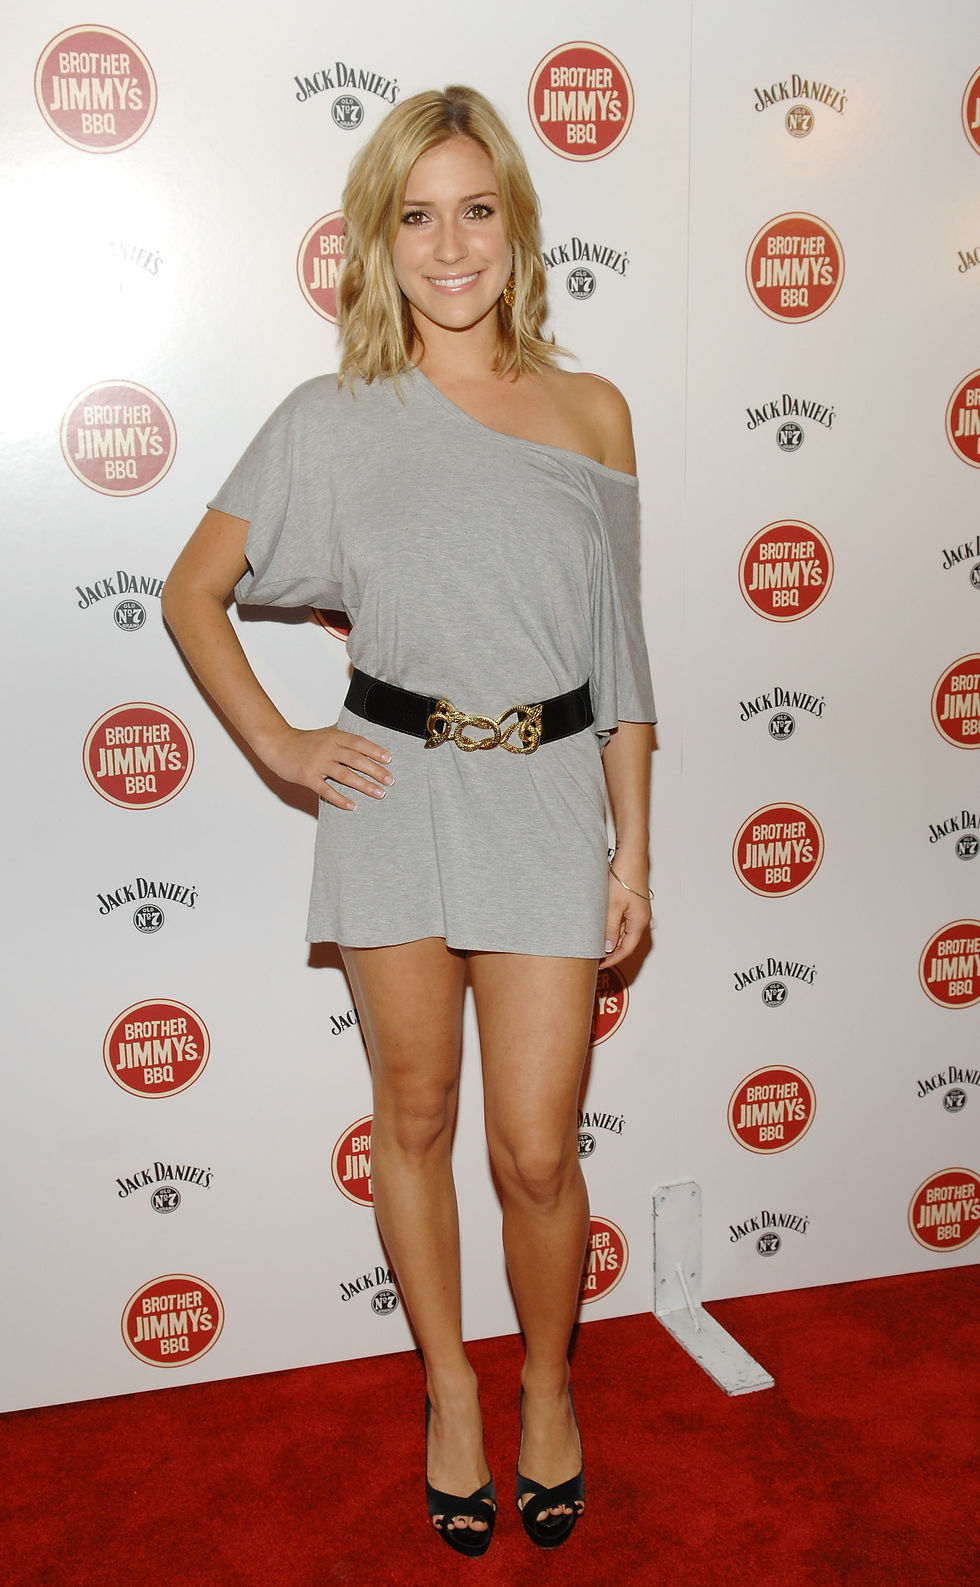 kristin-cavallari-brother-jimmys-bbq-restaurant-opening-in-new-york-01